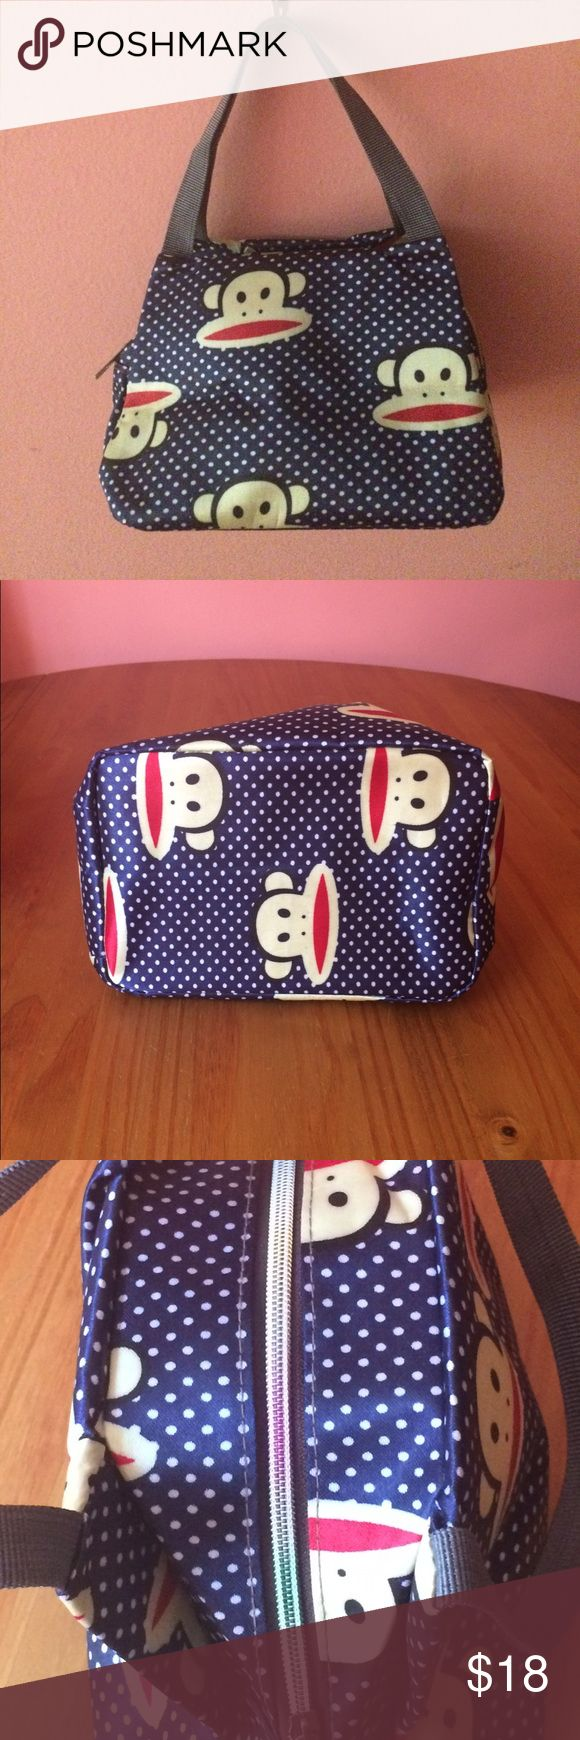 """🆕 Lunch tote Monkeys and polkadots. Blue lunch bag with white polkadots, grey / gray handles, grey / gray interior, and multiple monkey faces. Rainbow zipper. No interior pockets. Approximately 11"""" H x 10"""" L. Measurement includes straps. Please ask if you have questions. Paul Frank Bags"""